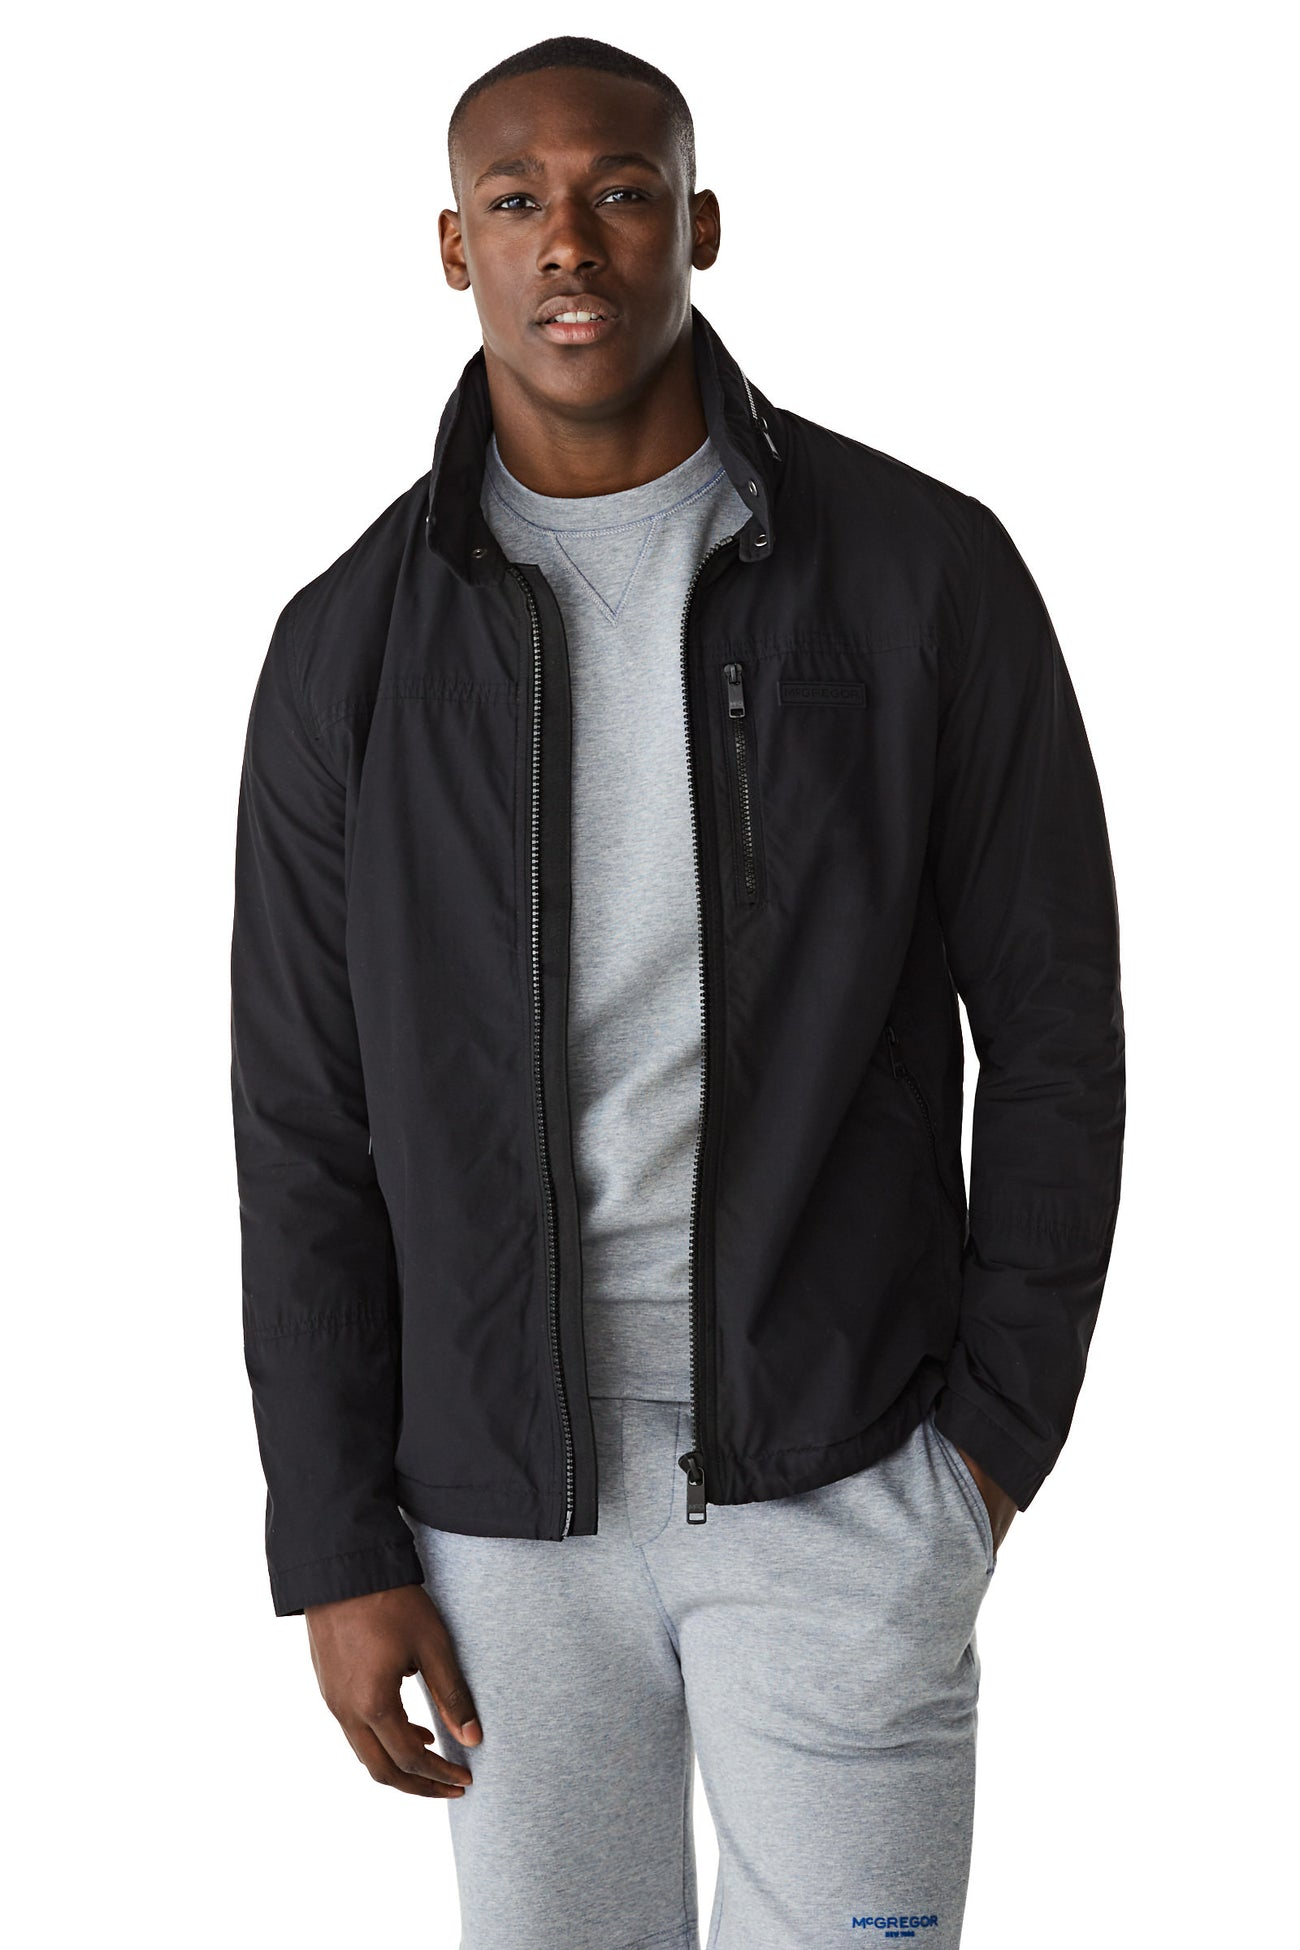 The McG Zipper Jacket